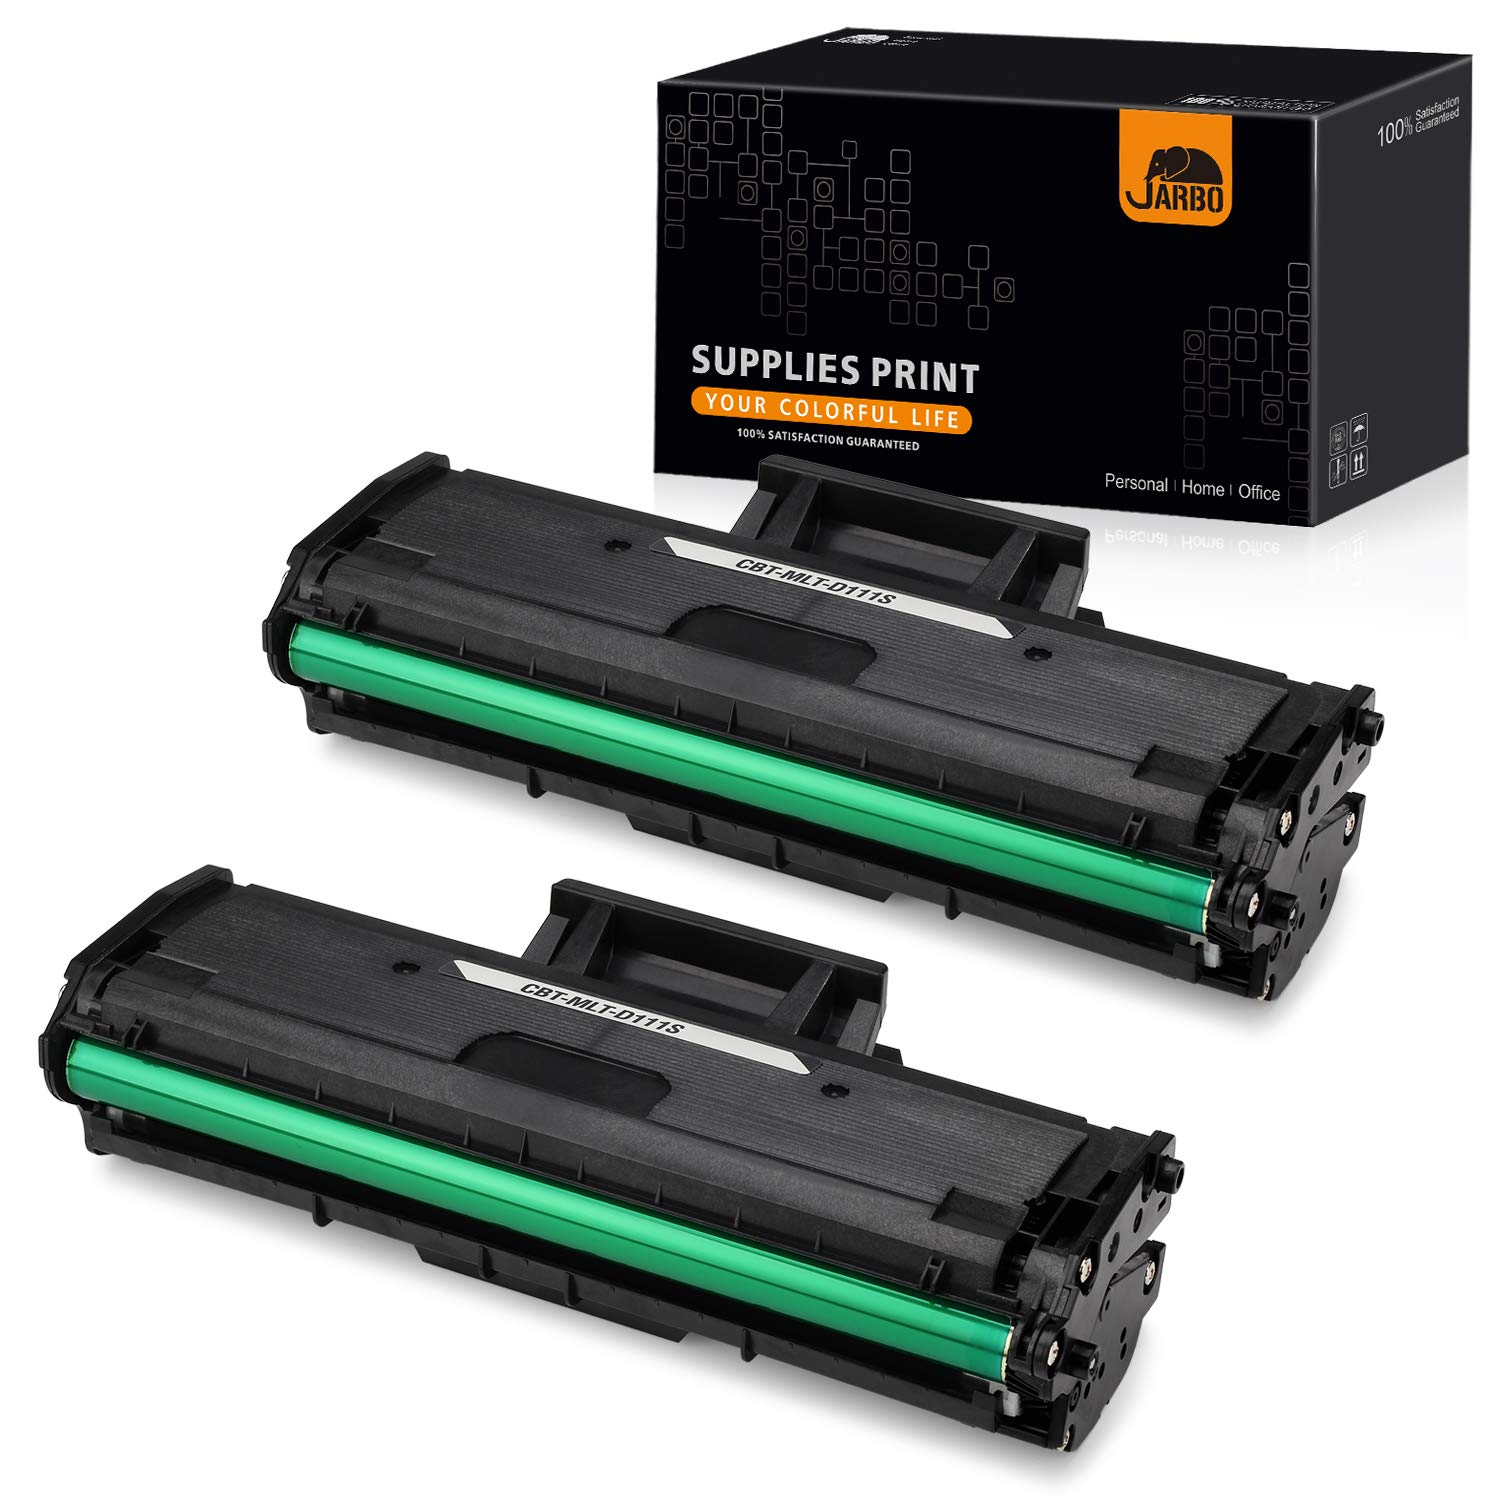 JARBO Compatible Toner Replacement for Samsung MLT111S MLT-D111S MLTD111S D111S, High Yield, 2 Black, Use with Samsung Xpress M2020W, Samsung Xpress M2070FW, Samsung Xpress M2070W Laser Printer by JARBO